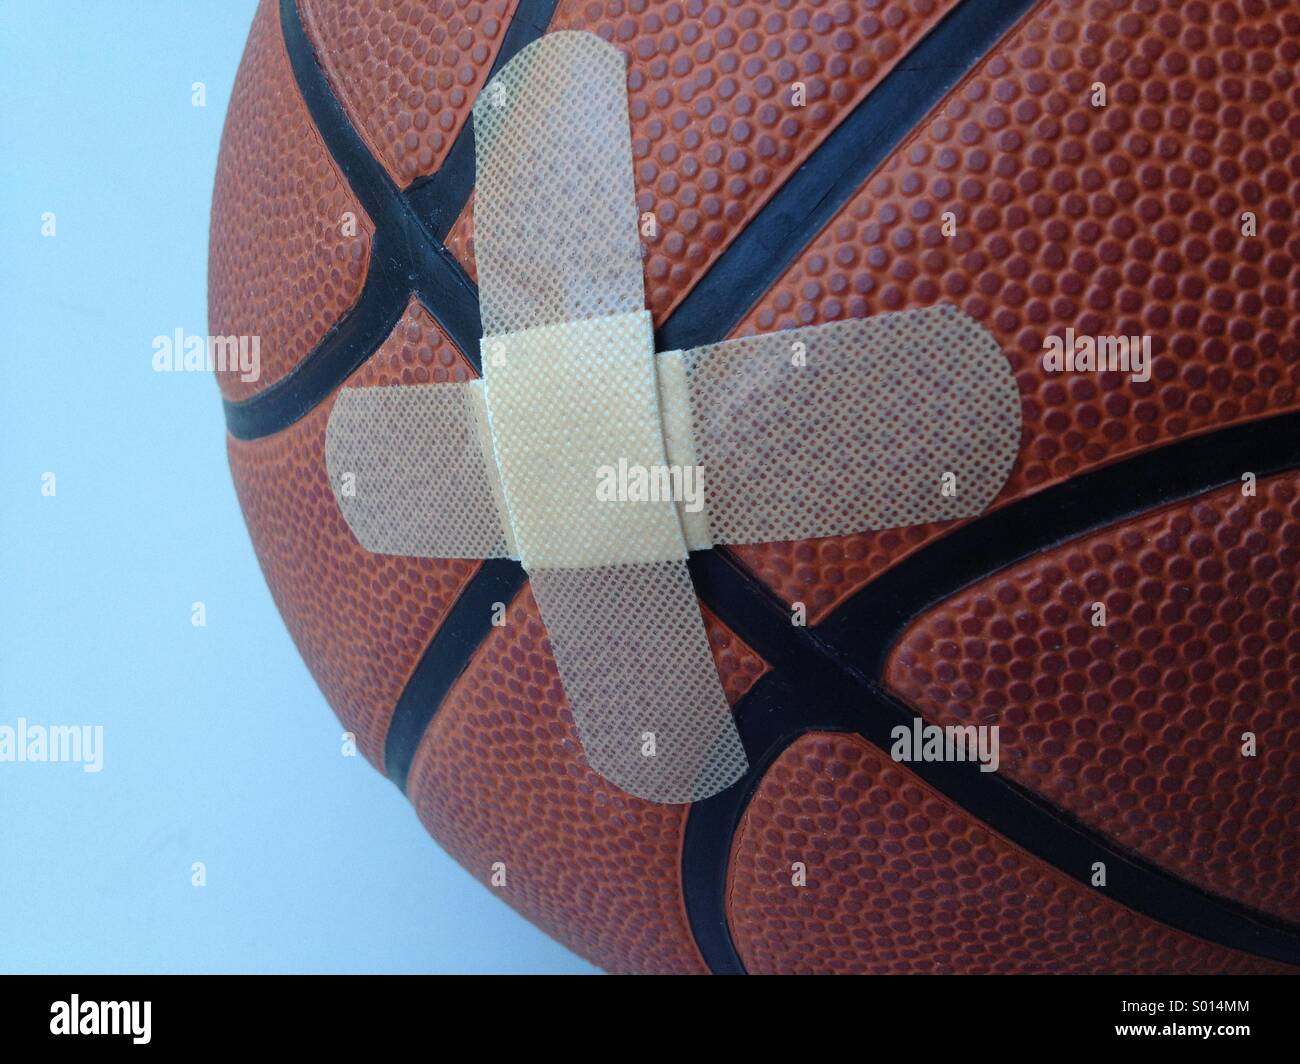 Temporary fix: Two bandages crisscrossed on basketball - Stock Image